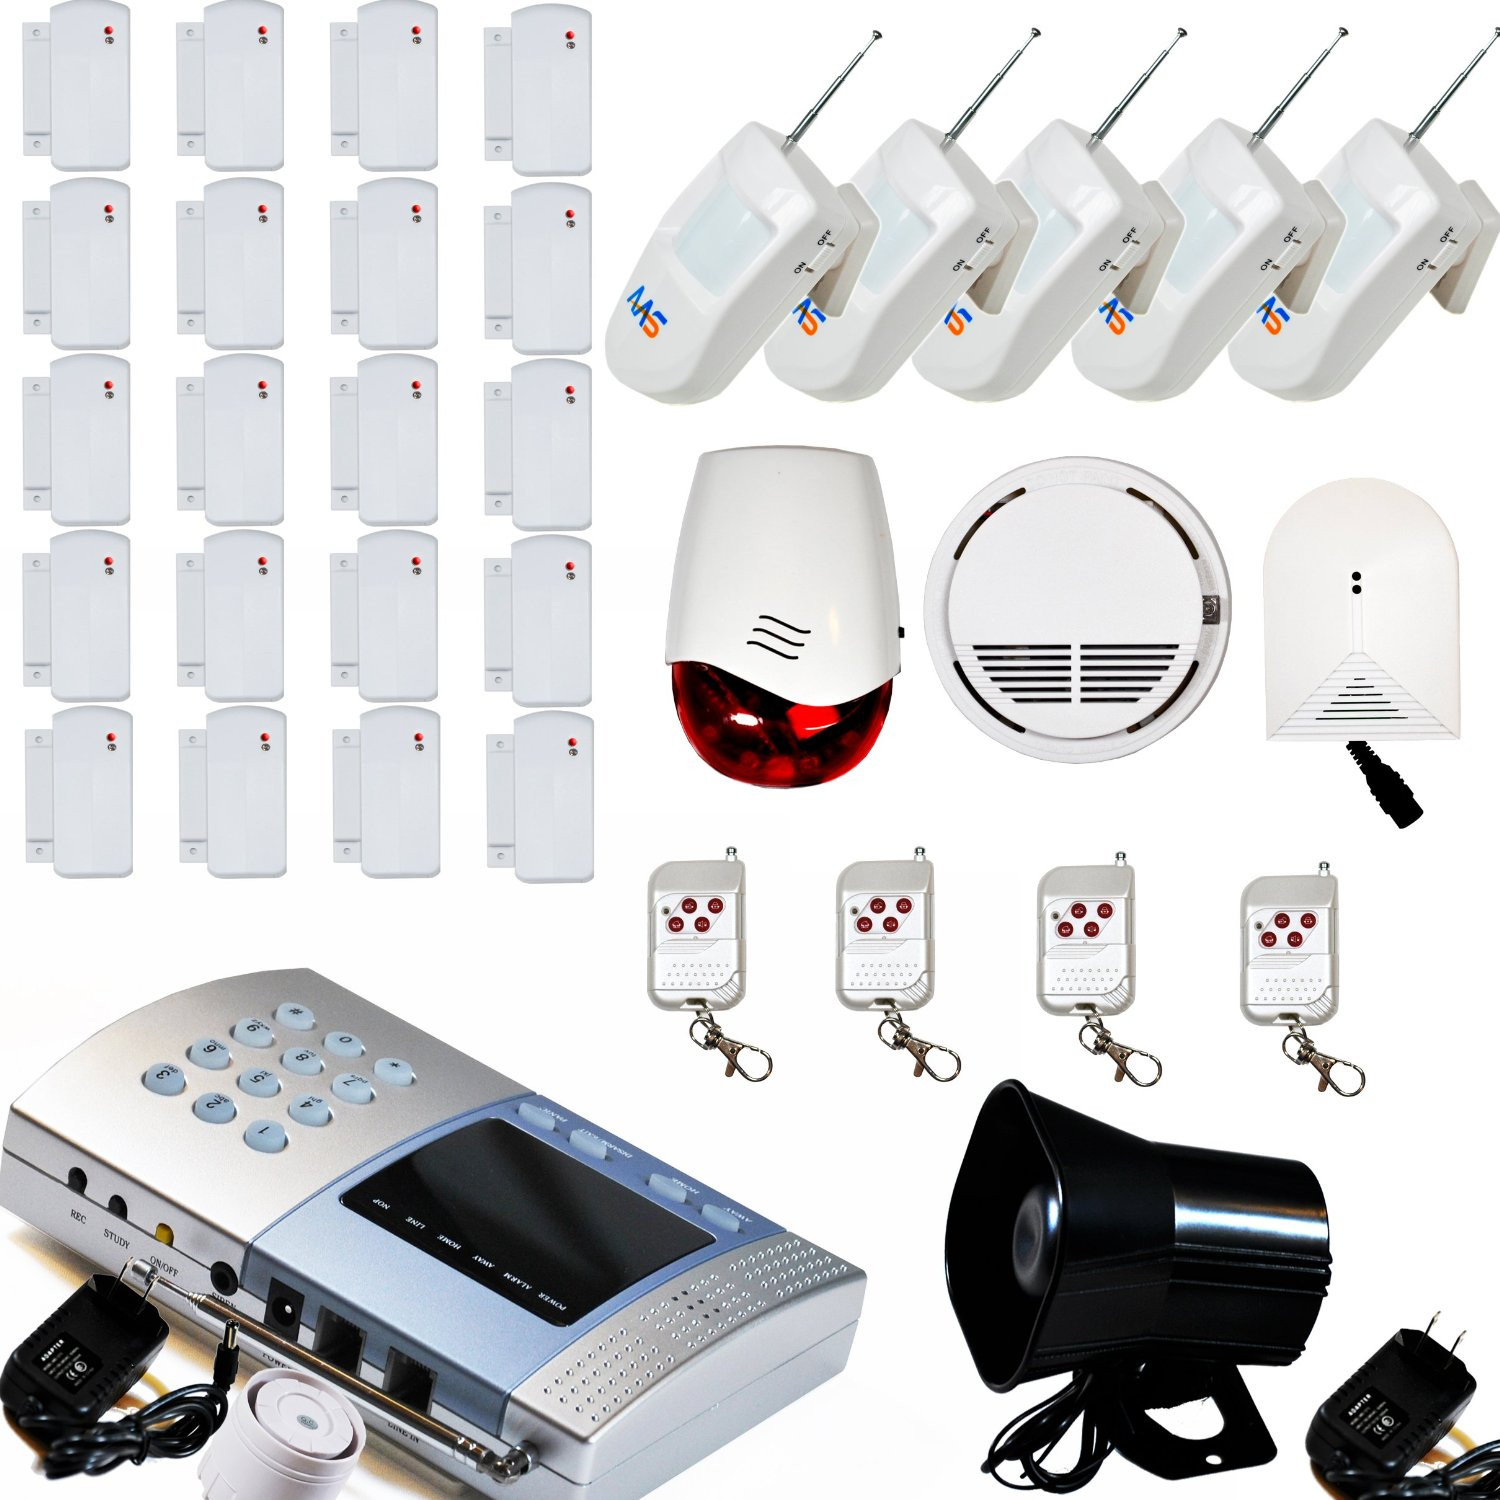 DIY Home Security Monitoring  AAS V600 Wireless Home Security Alarm System Kit DIY